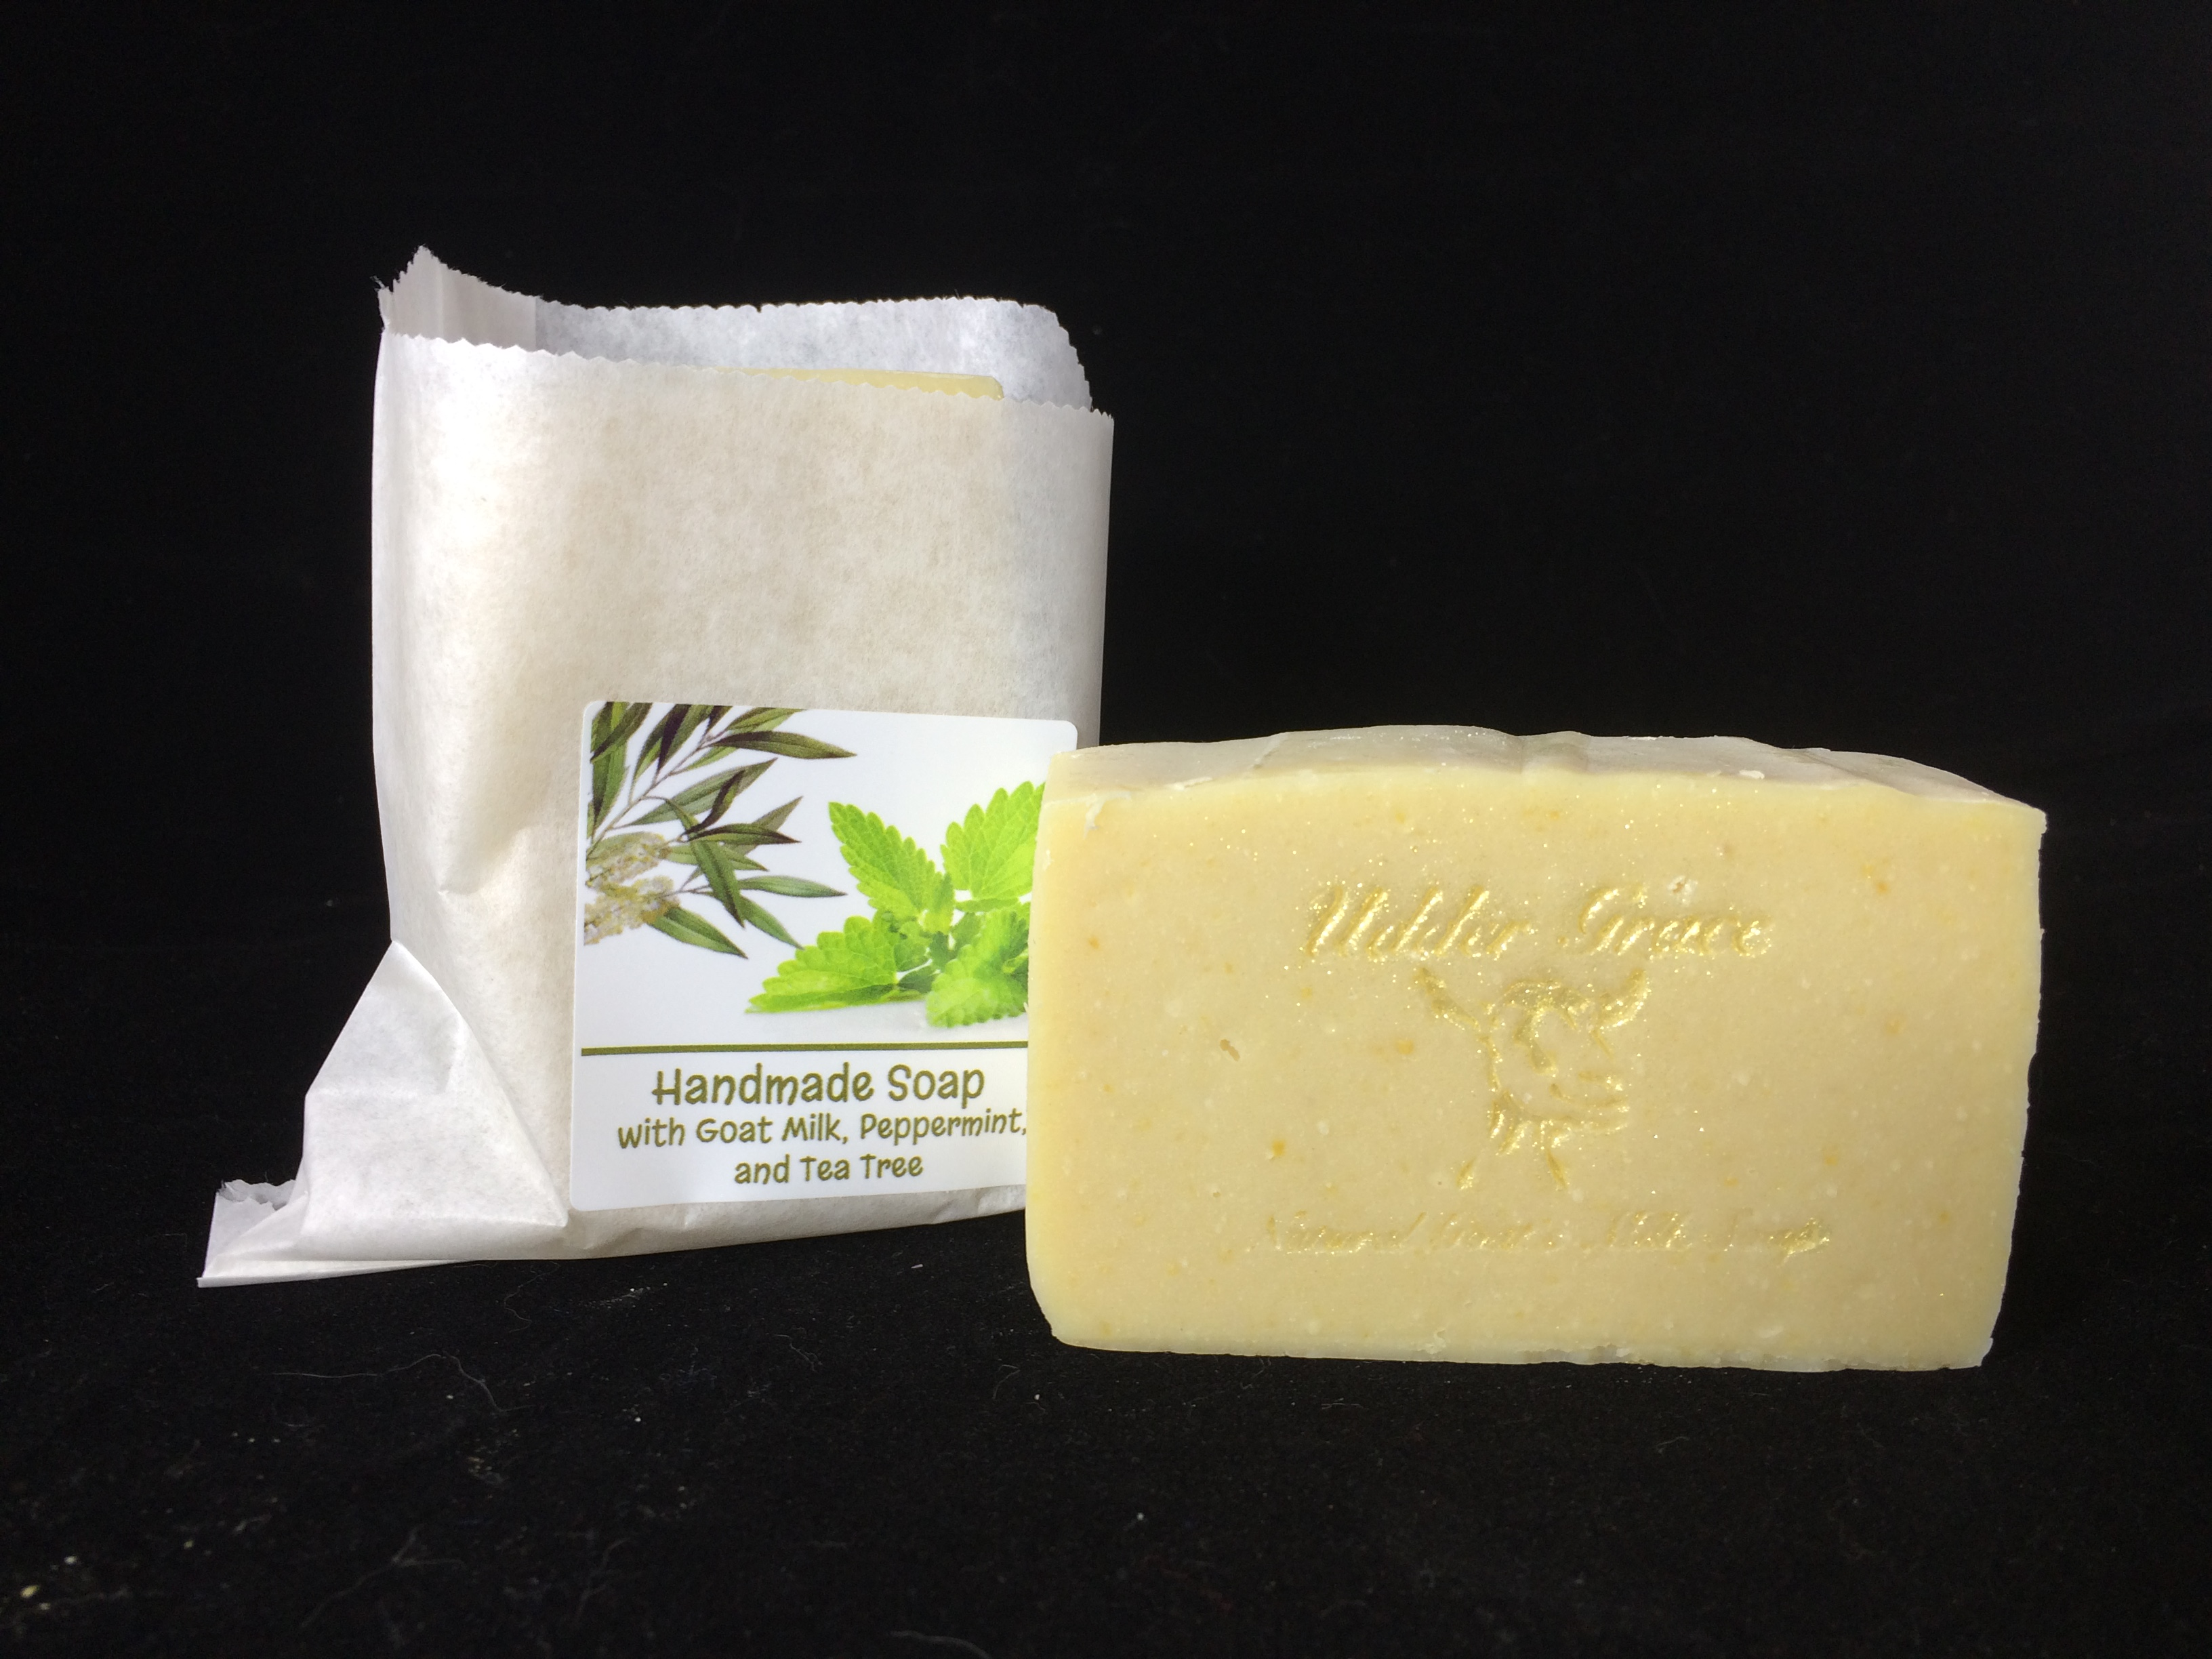 peppermint and tea tree goat milk soap